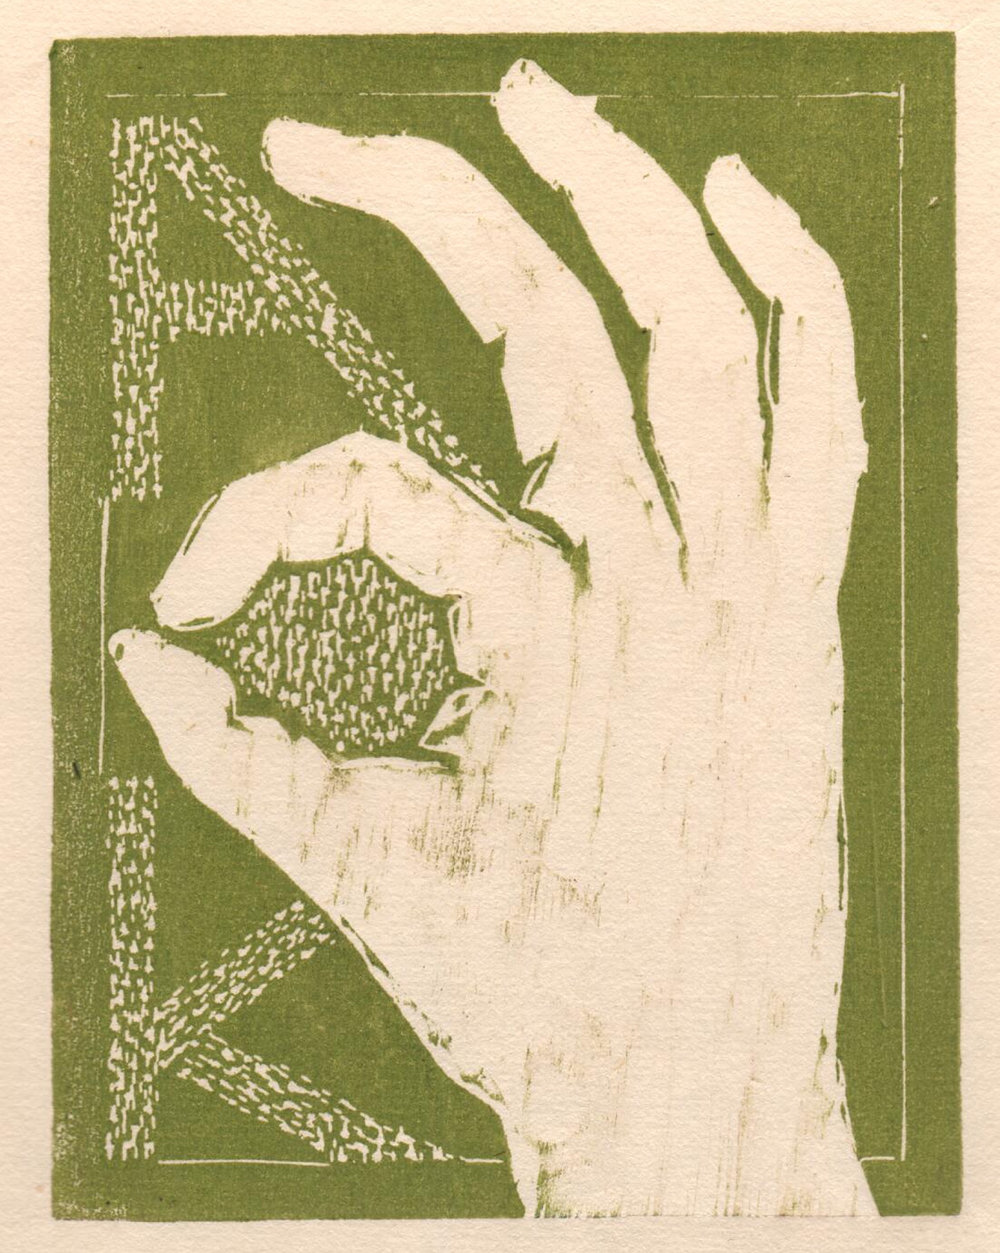 "'Helping Hands, AOK', woodcut, 6.5"" x 5"", $80 unframed"